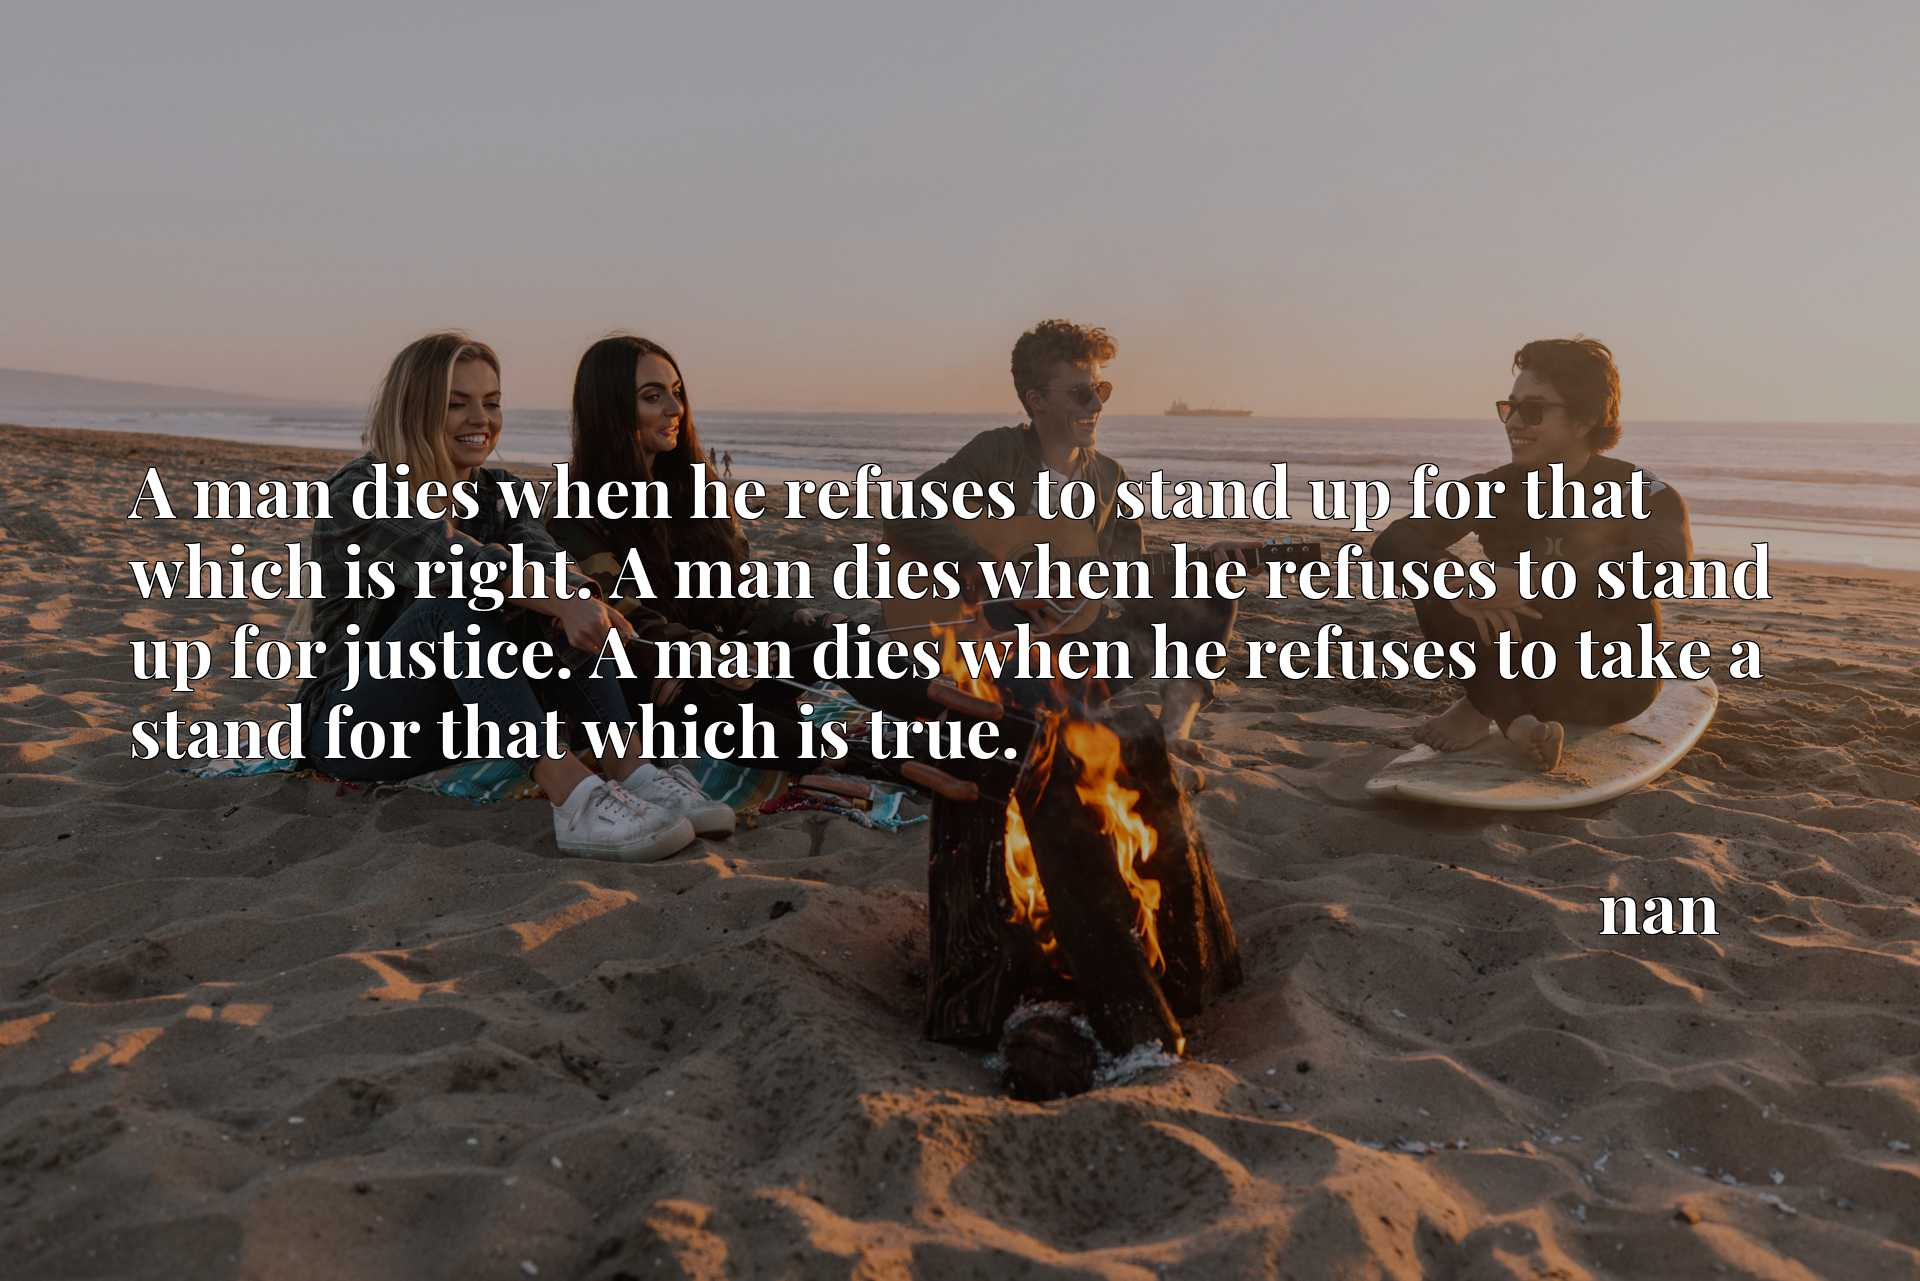 A man dies when he refuses to stand up for that which is right. A man dies when he refuses to stand up for justice. A man dies when he refuses to take a stand for that which is true.